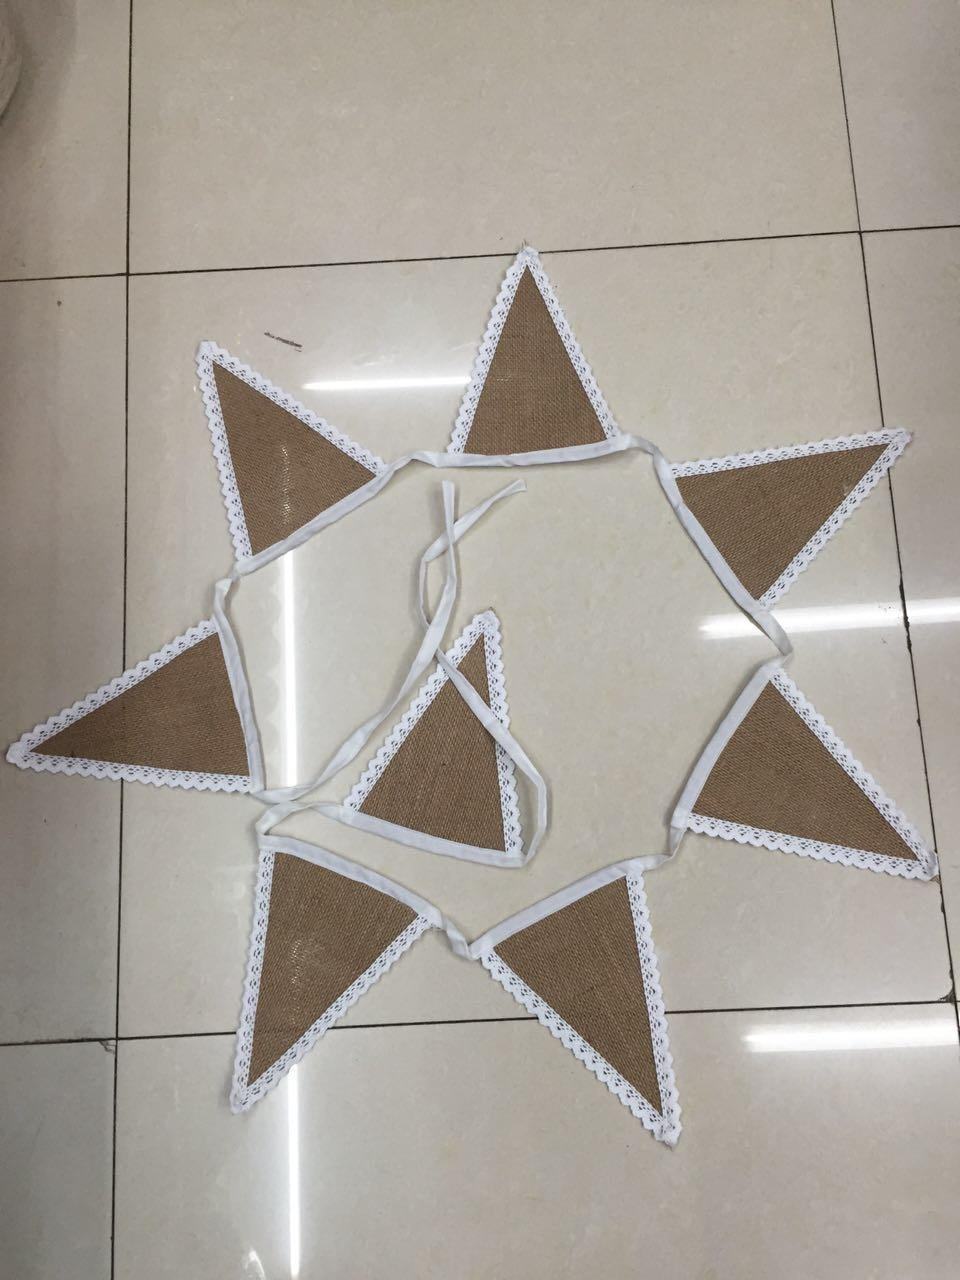 2019 Wholesale Christmas Decoration 8Flags 2.5M Lace Fabric Banners  Personality Wedding Bunting Decor Vintage Party Birthday Garland Decoration  From Hogane 5d521fb5ac79